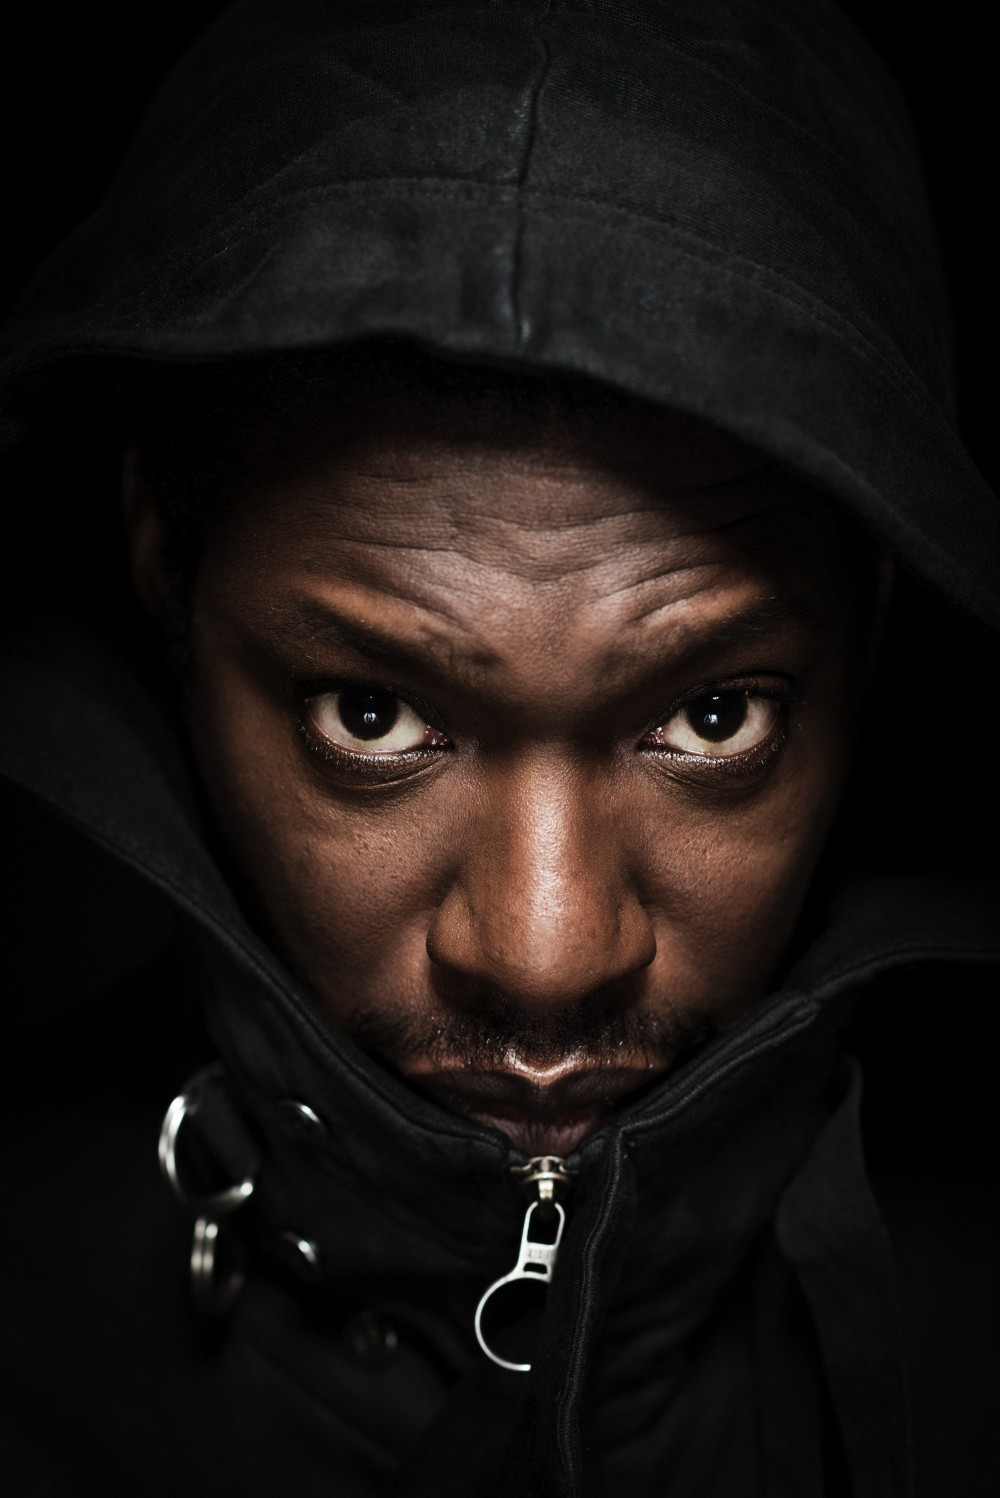 Roots Manuva Announces New Ep Shares Video